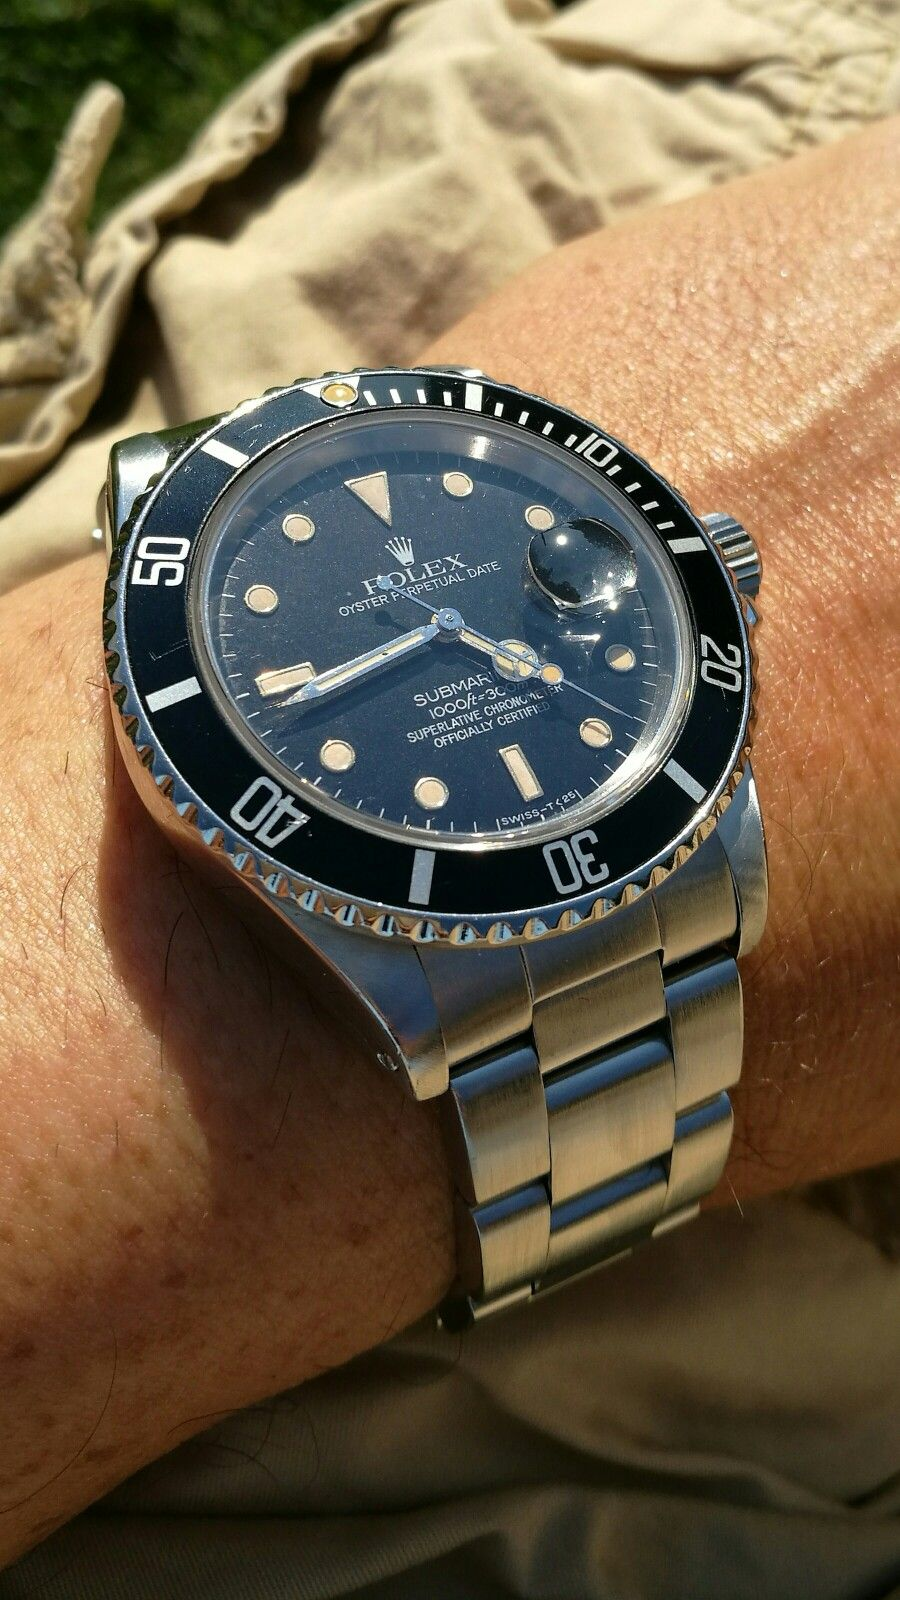 Rolex Submariner 168000 from 1987 Luxury watches for men